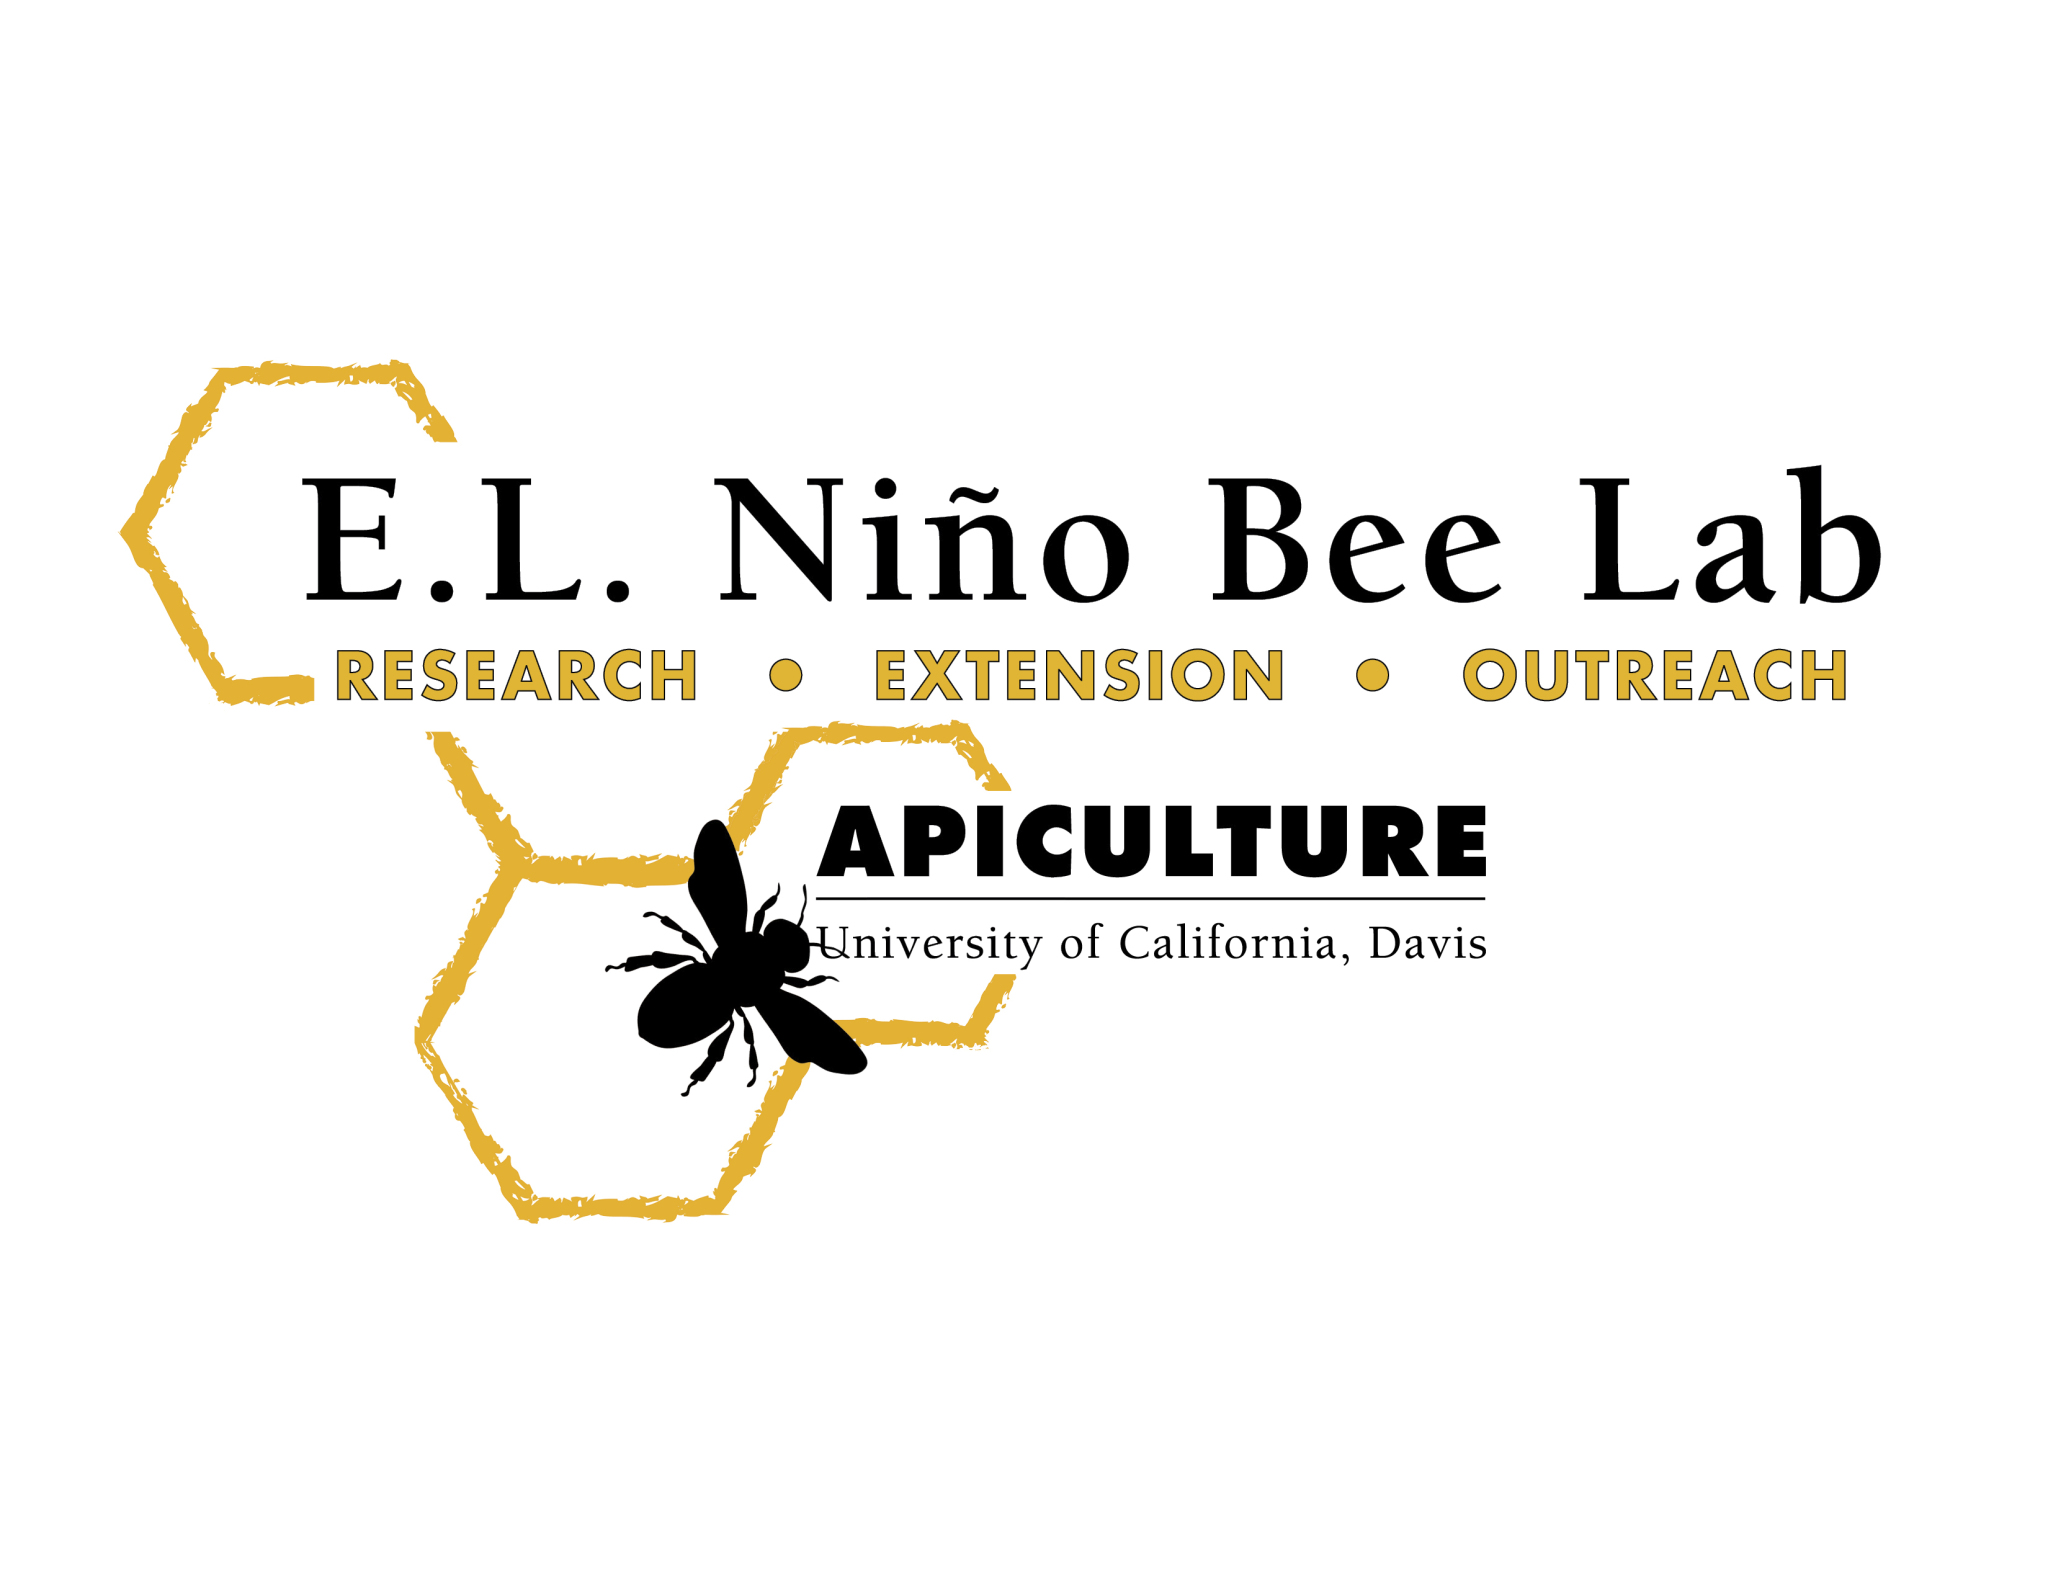 E. L. Niño Bee Lab